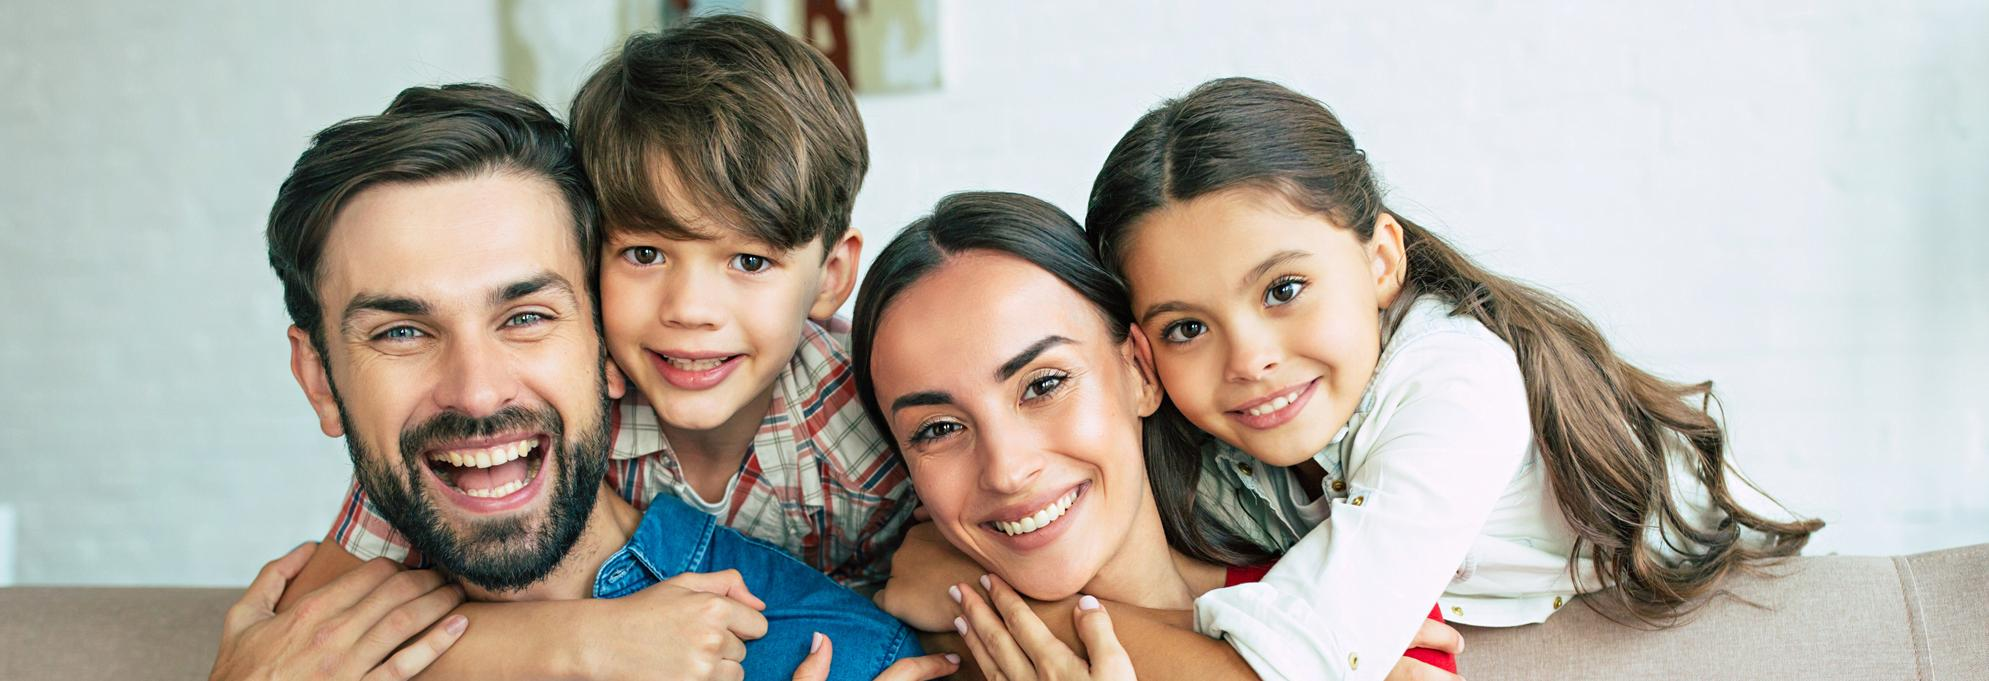 blue ash dental group smiling family blue ash cincinnati ohio